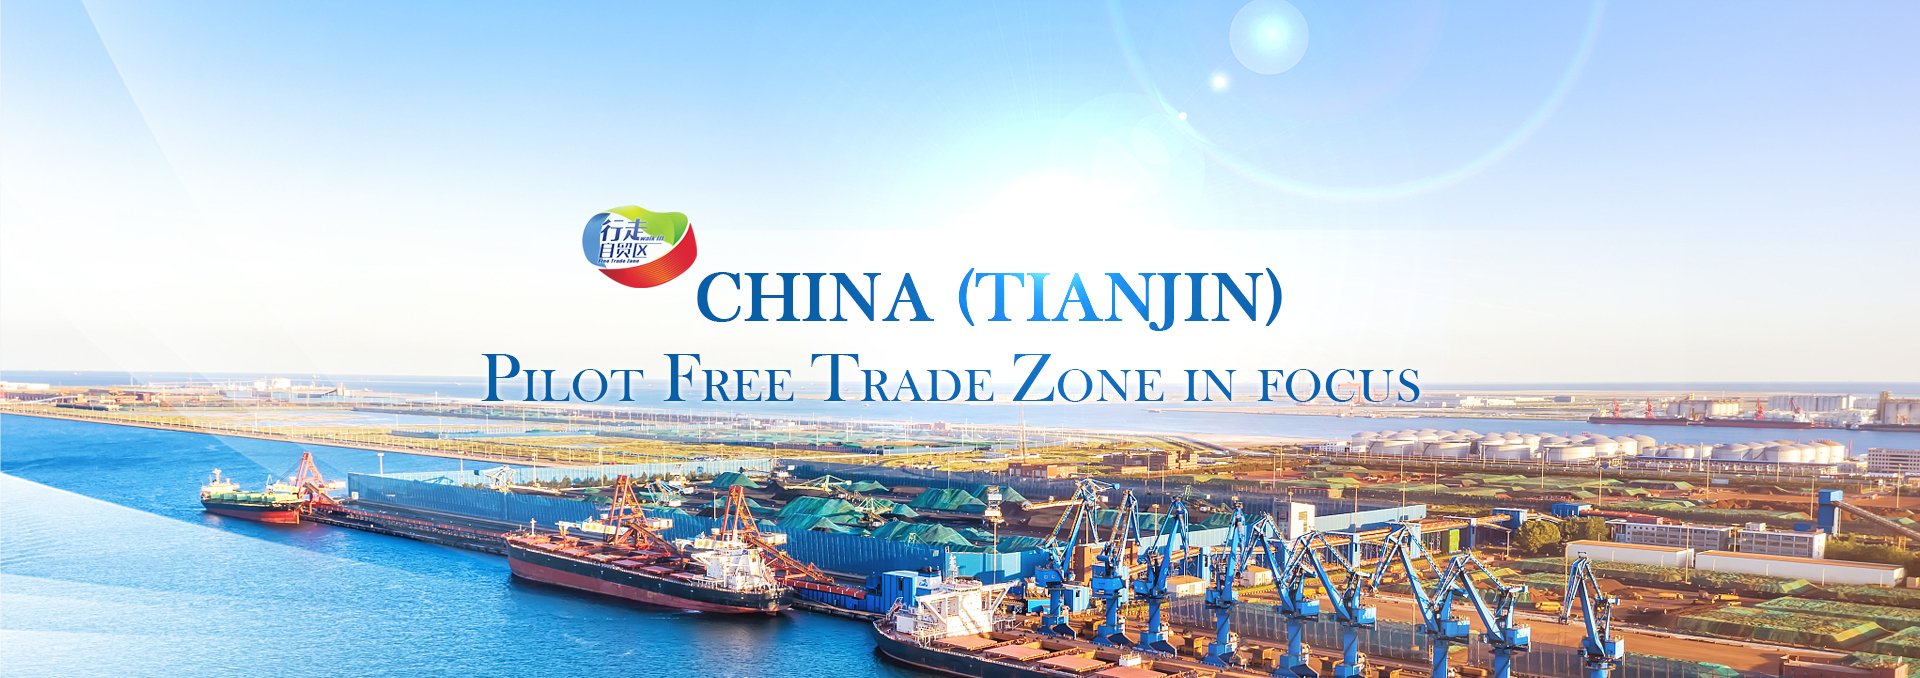 China (Tianjin) Pilot Free Trade Zone in Focus